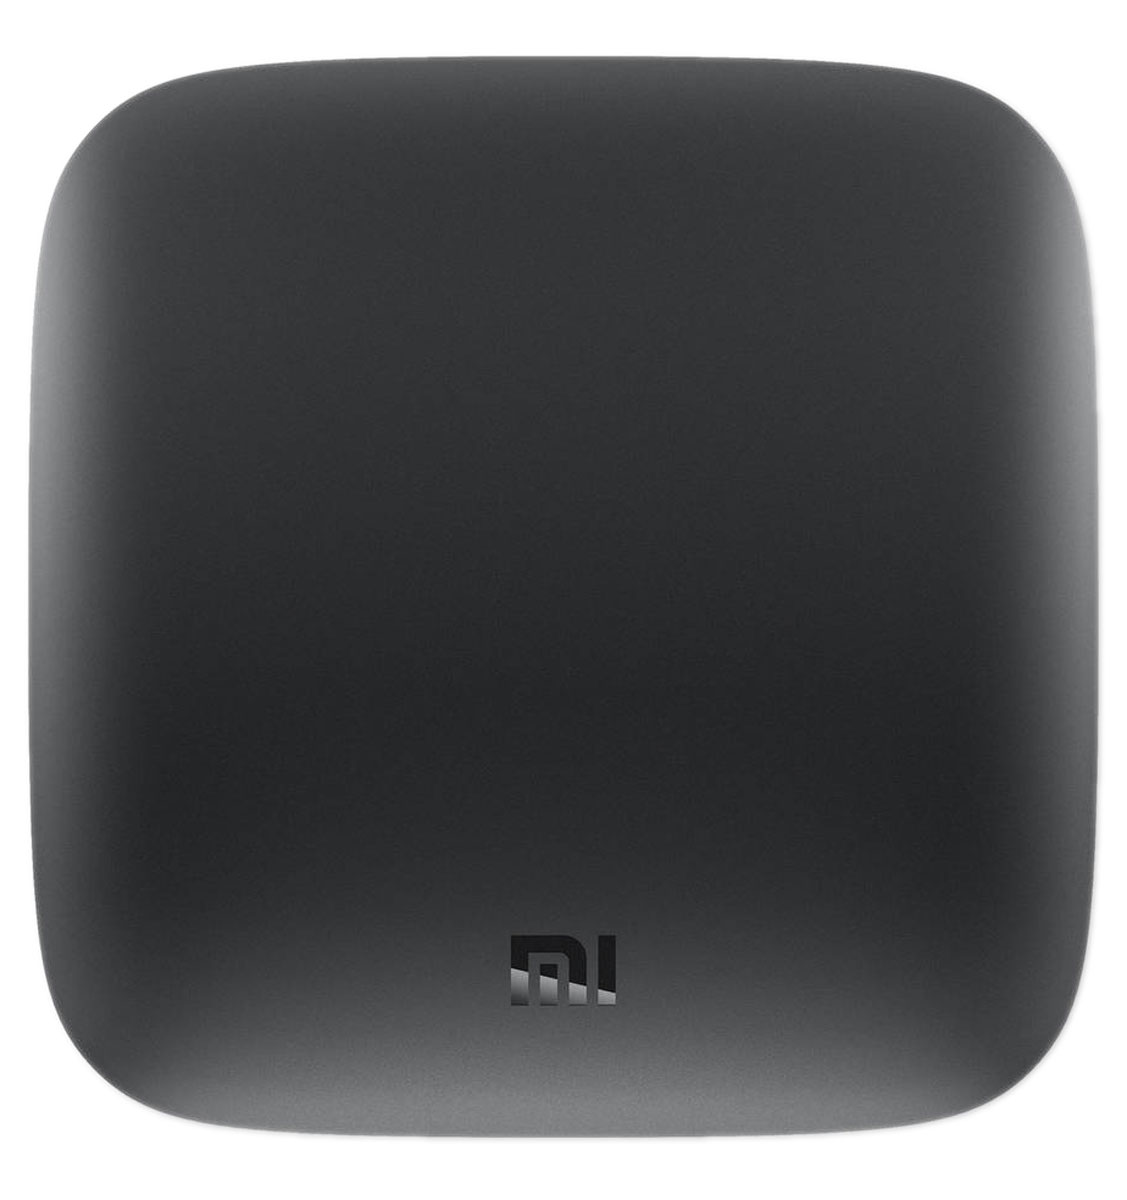 Xiaomi Mi Box International Version (MDZ-16-AB) медиаплеер